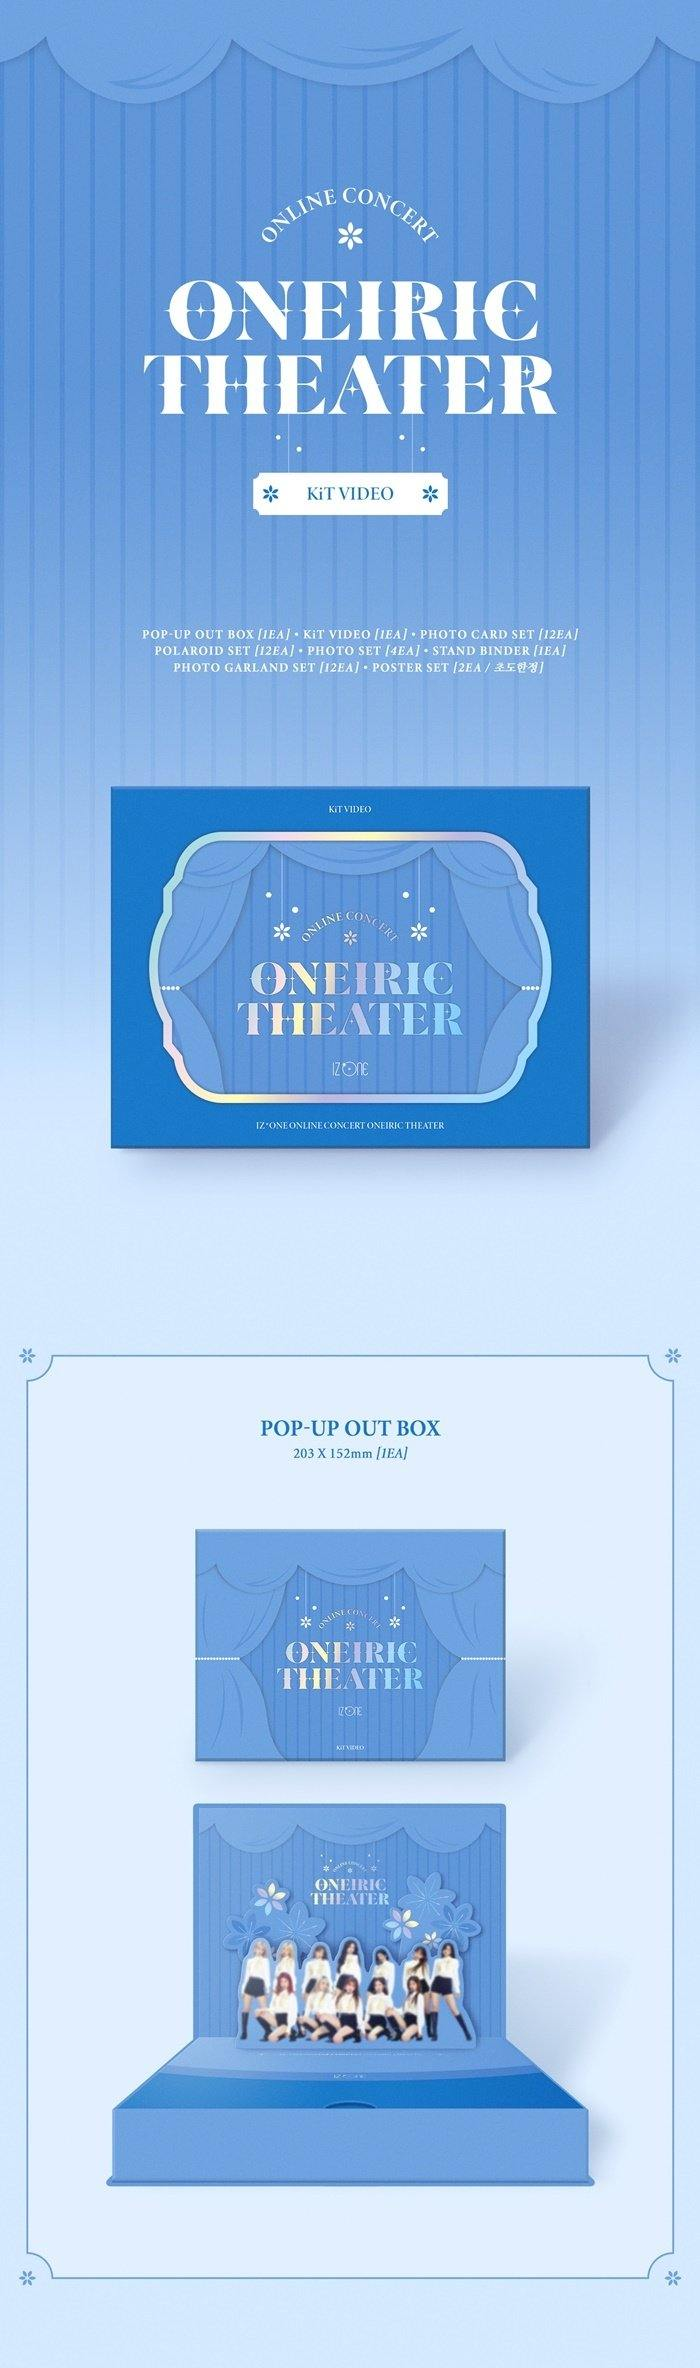 IZ*ONE - Oneiric Theater (Online Concert) - Kit Video - Pre-Order